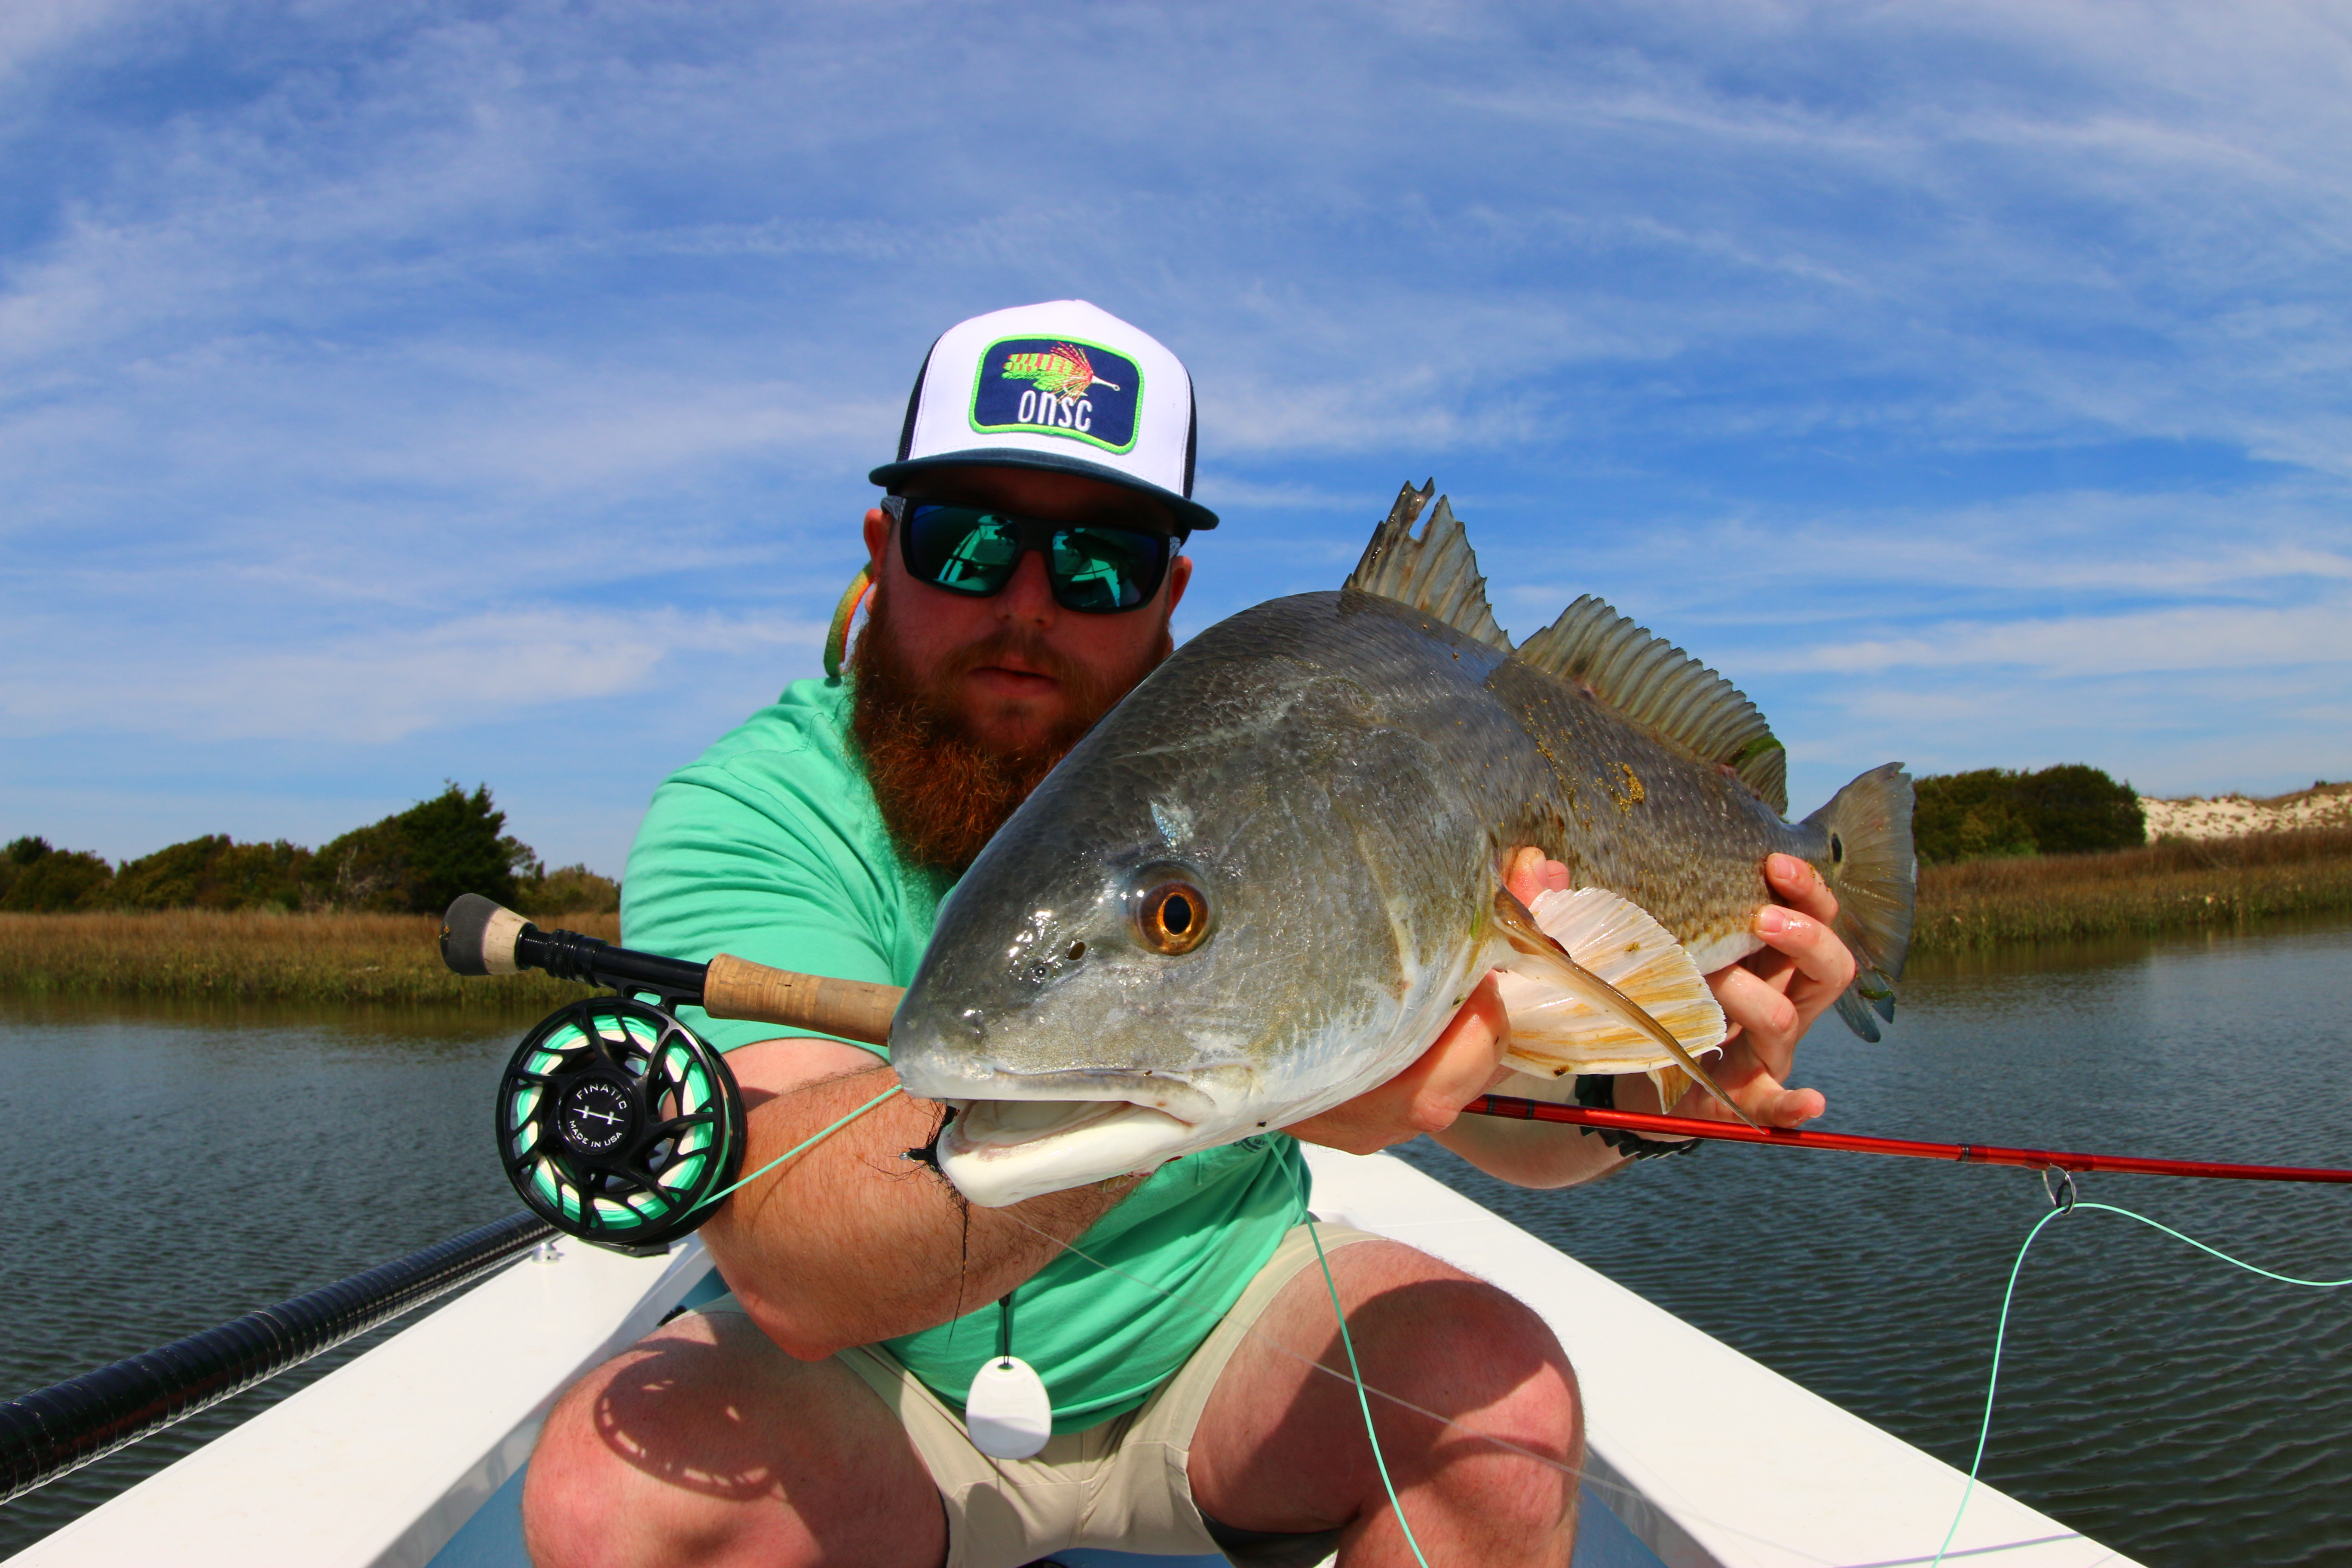 Reds on the fly fishing reports coastal carolina fisherman for Reds fly fishing